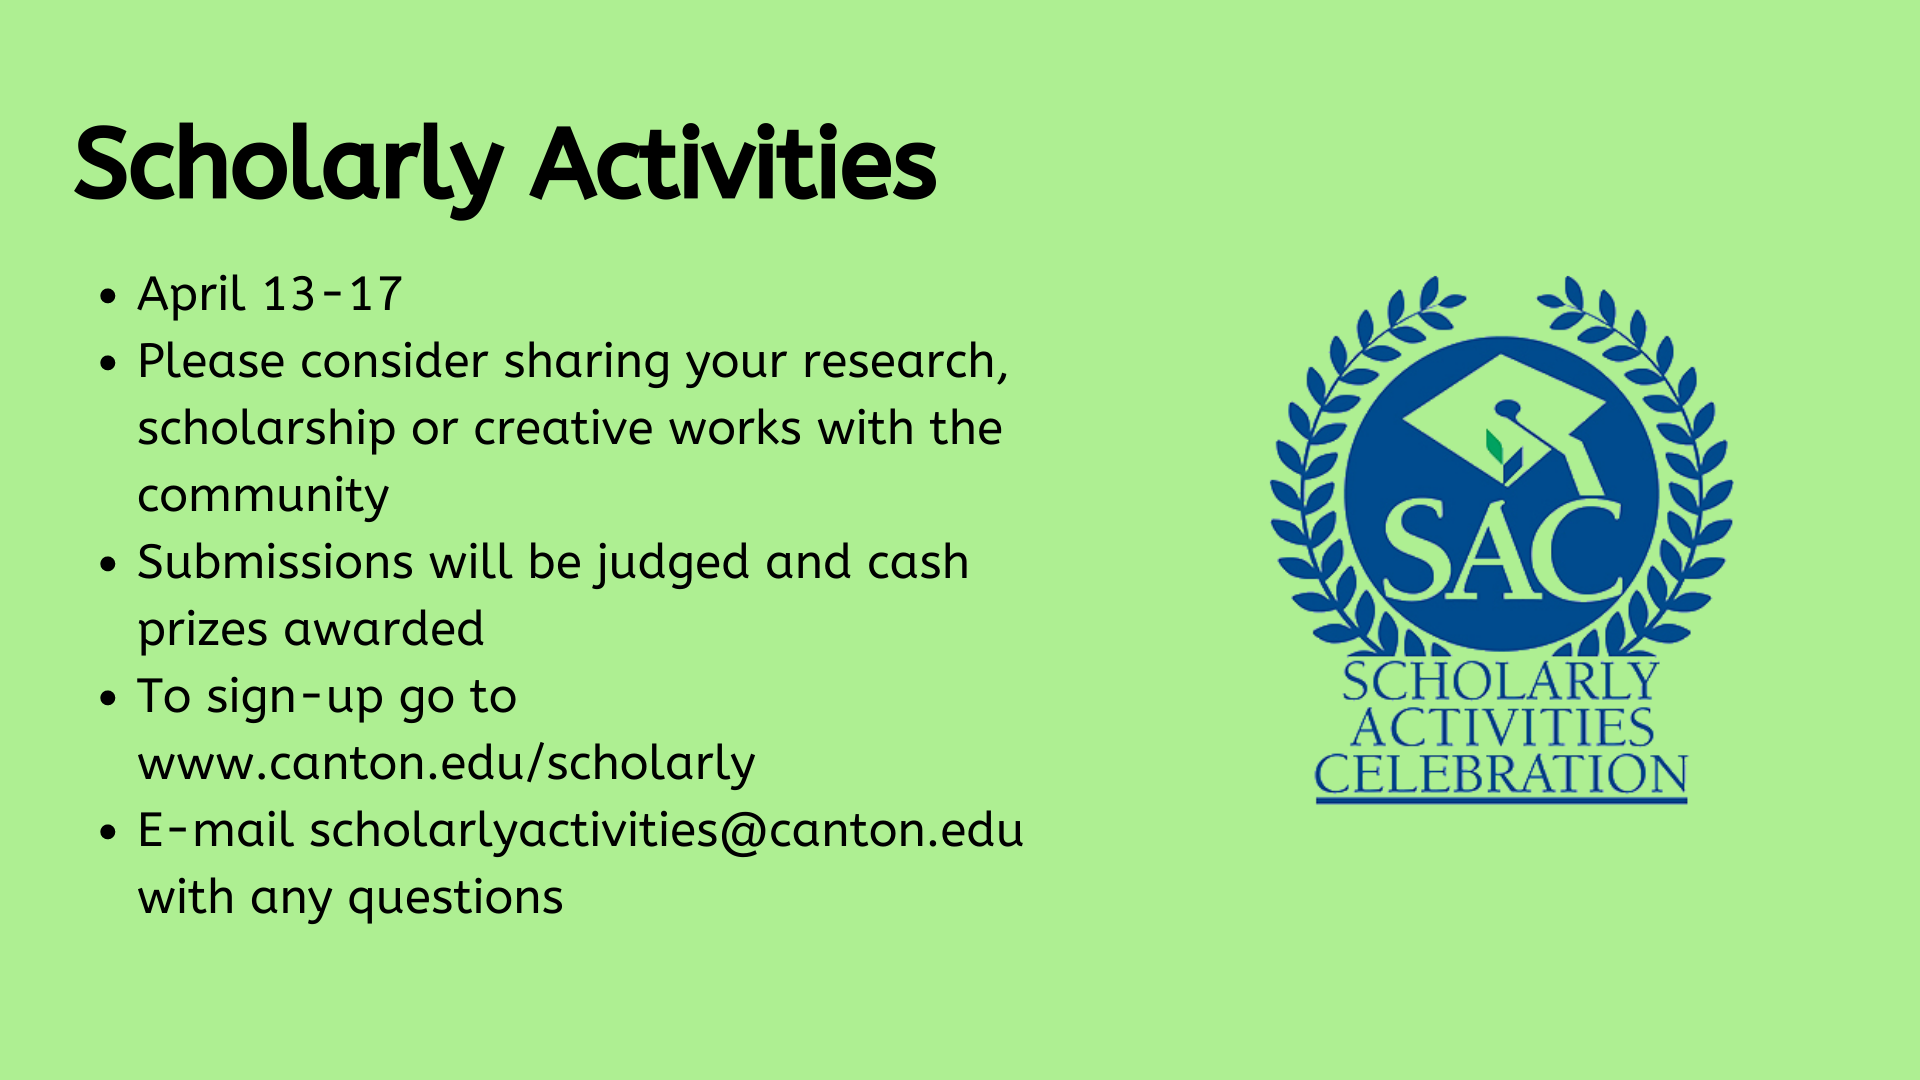 Scholarly Activities, April 13-17 Please consider sharing your research, scholarship or creative works with the community  Submissions will be judged and cash prizes awarded To sign-up go to www.canton.edu/scholarly  E-mail scholarlyactivities@canton.edu with any questions